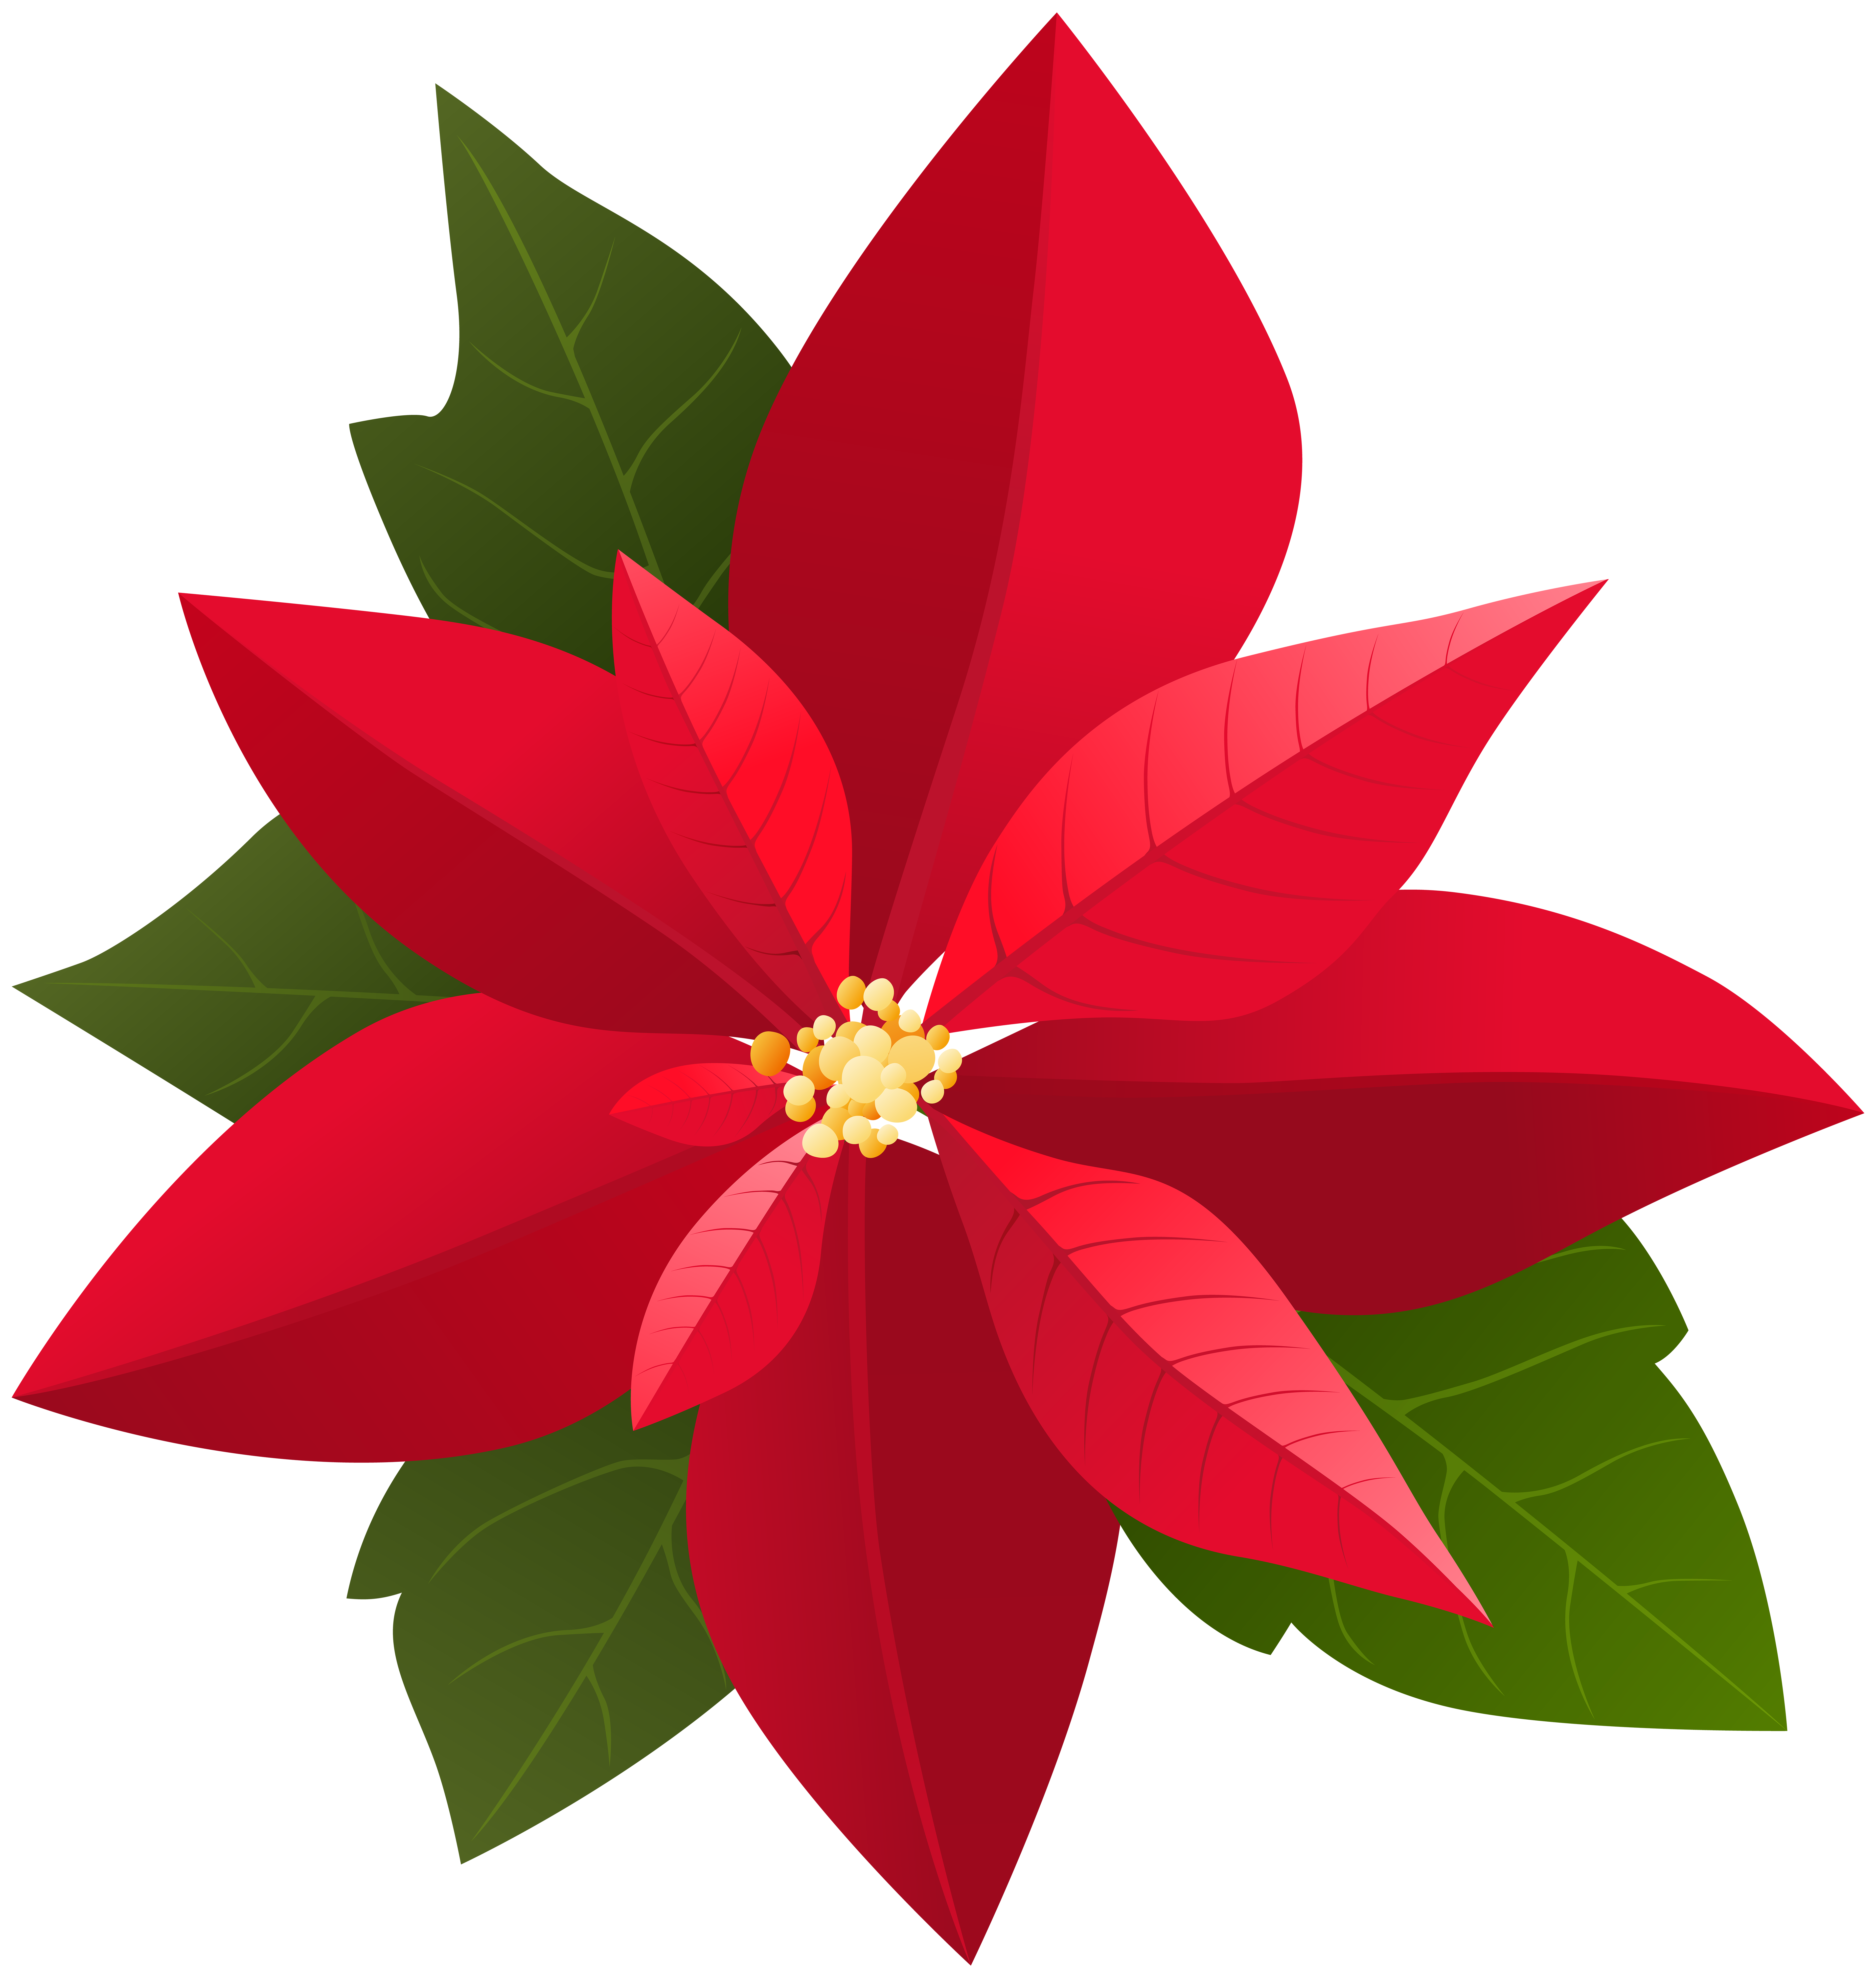 Christmas poinsettia png art. Poinsetta clip clip art black and white library